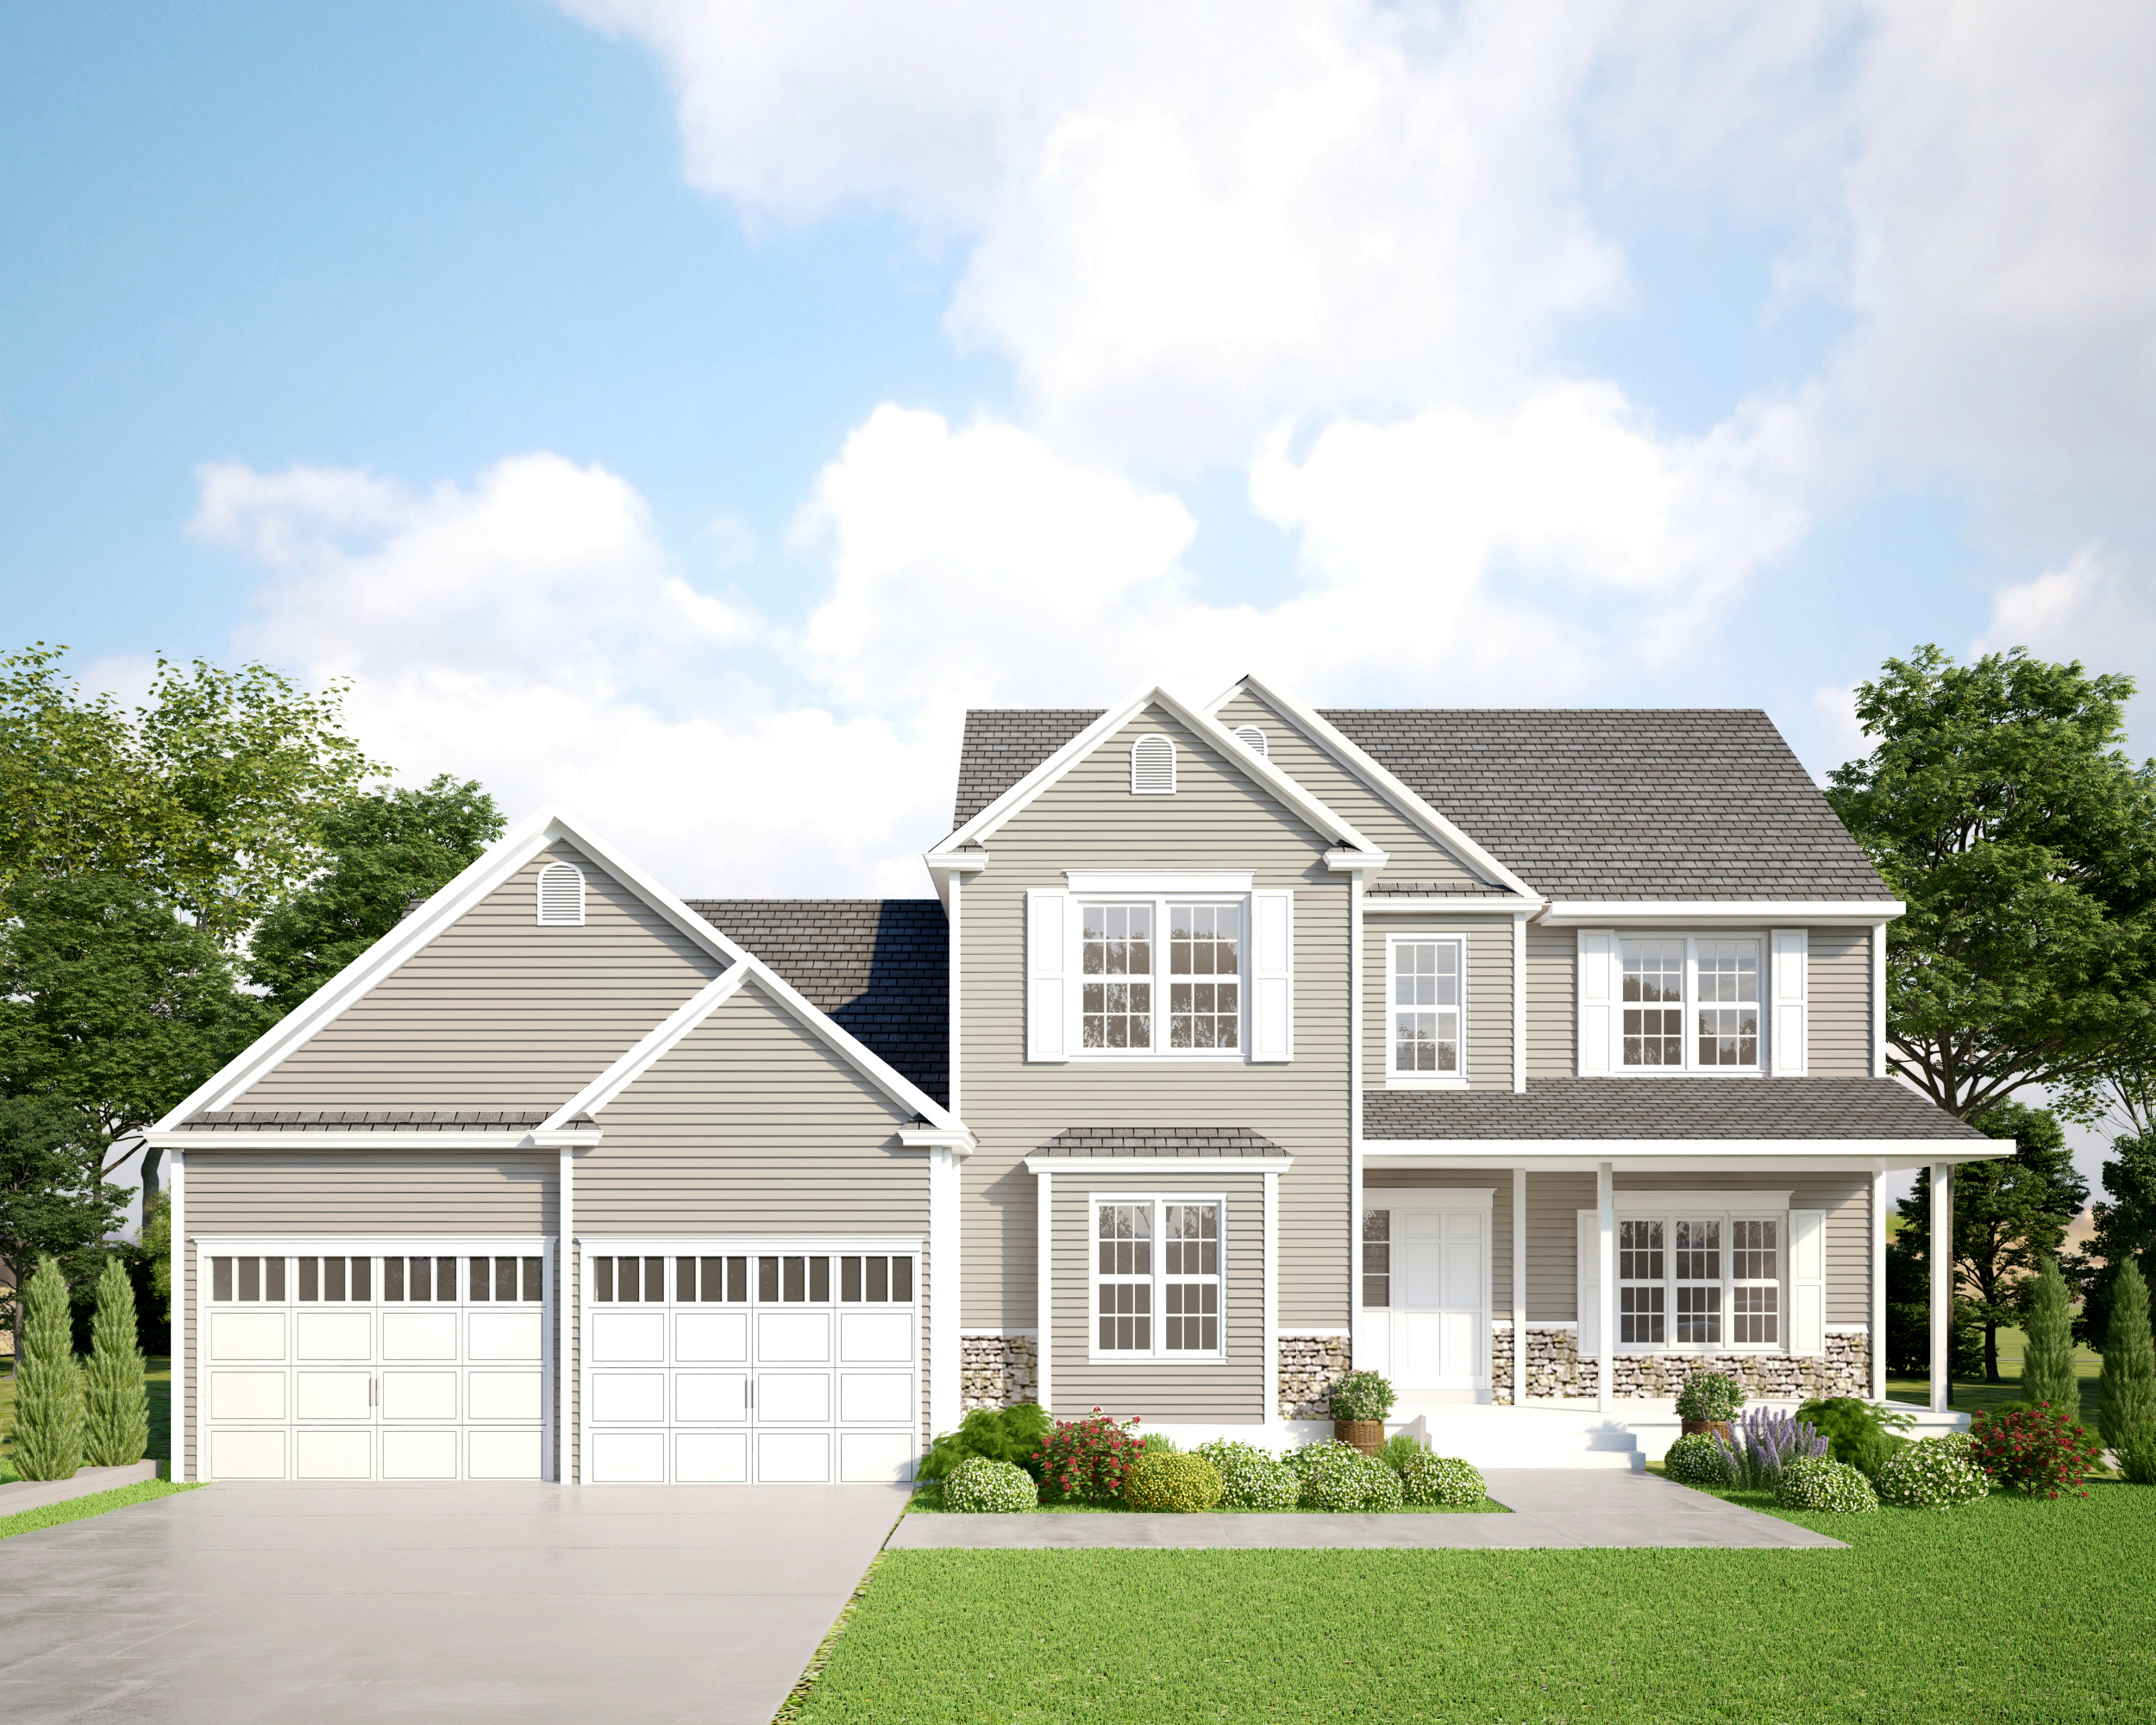 Gray Two story Home with Stone Veneer